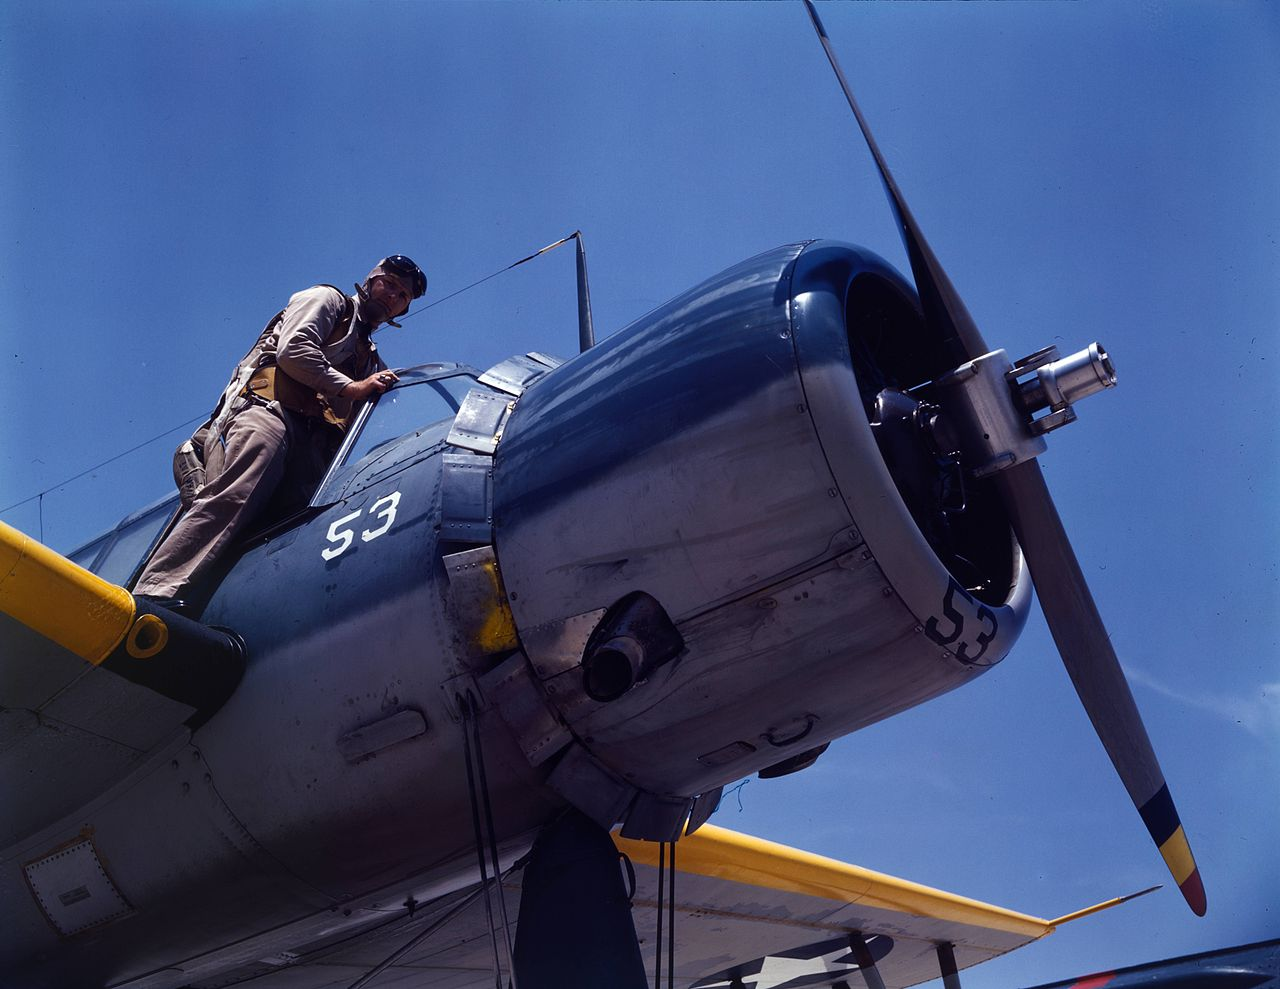 A U.S. Navy aviation cadet in training on a Vought OS2U Kingfisher at the Naval Air Station Corpus Christi, Texas (USA)